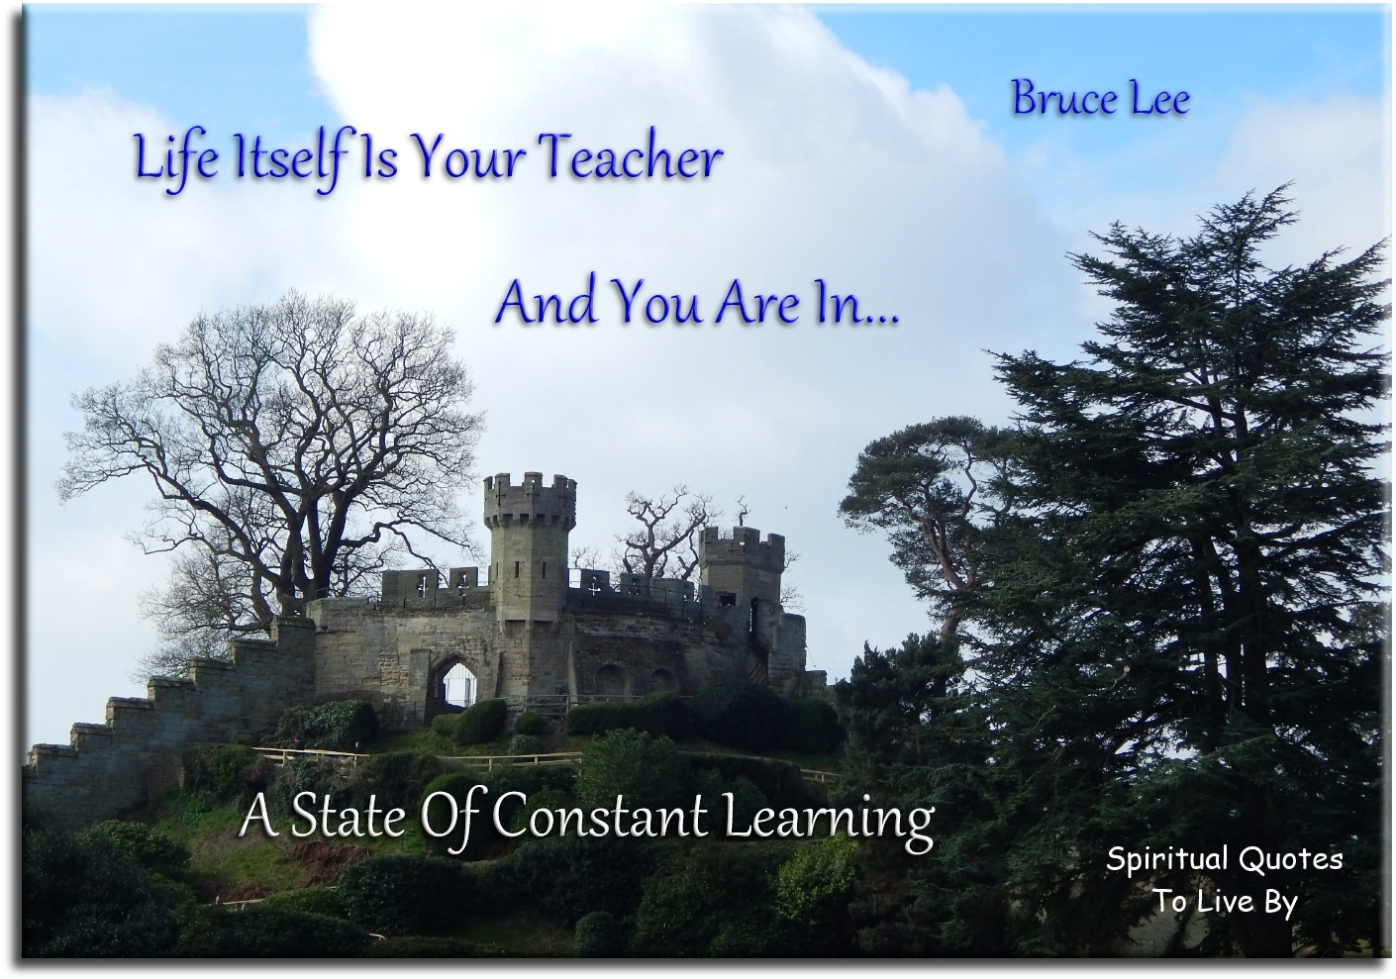 Life itself is your teacher, and you are in a state of constant learning - Bruce Lee - Spiritual Quotes To Live By